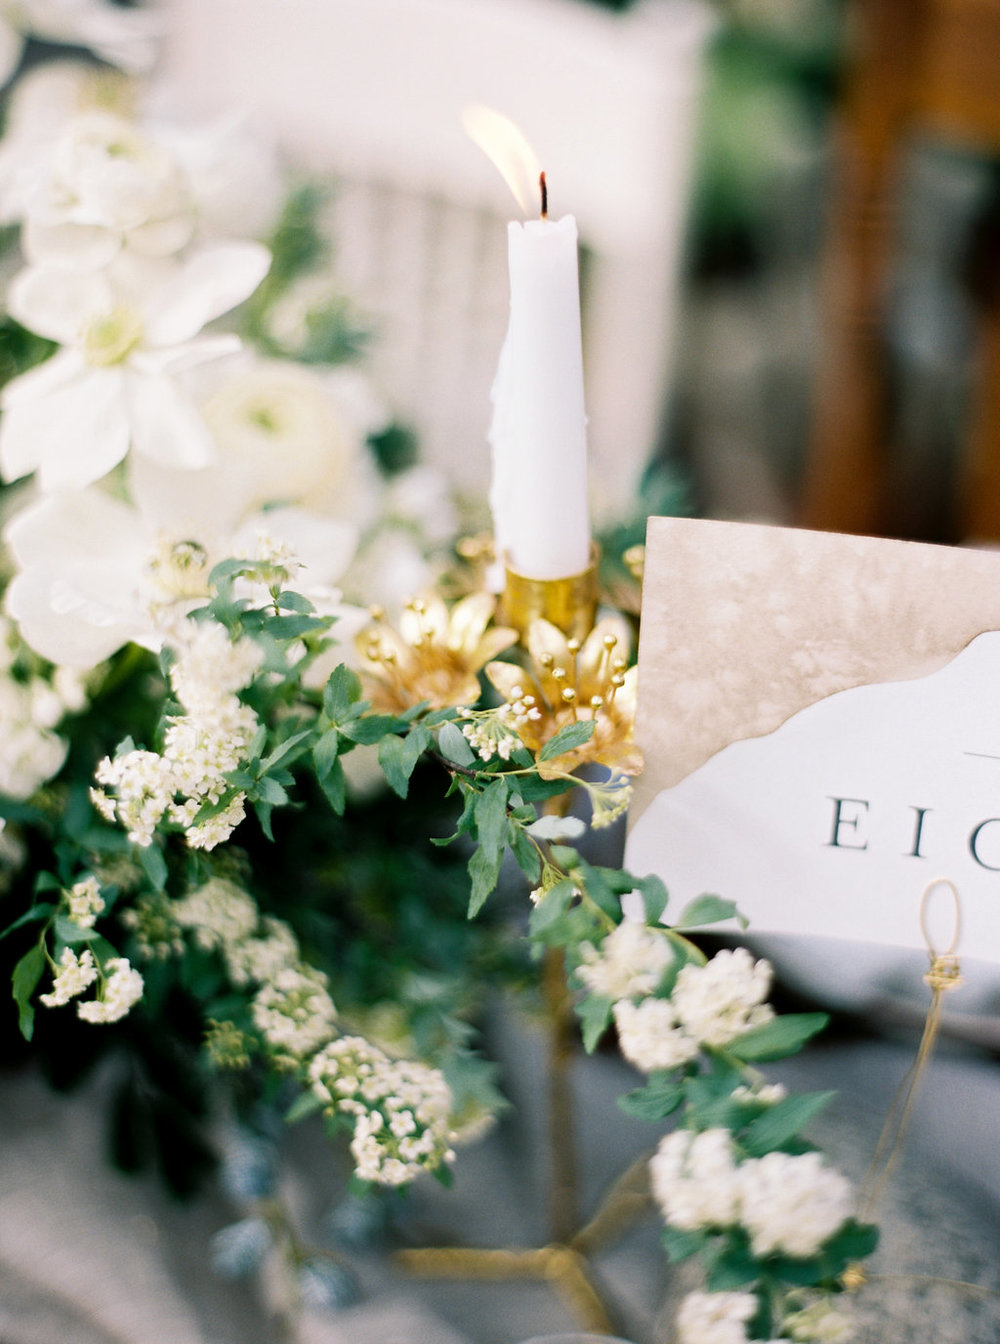 riggeri-boston-wedding-botanical-sparrow-inspiration-linen-table-details